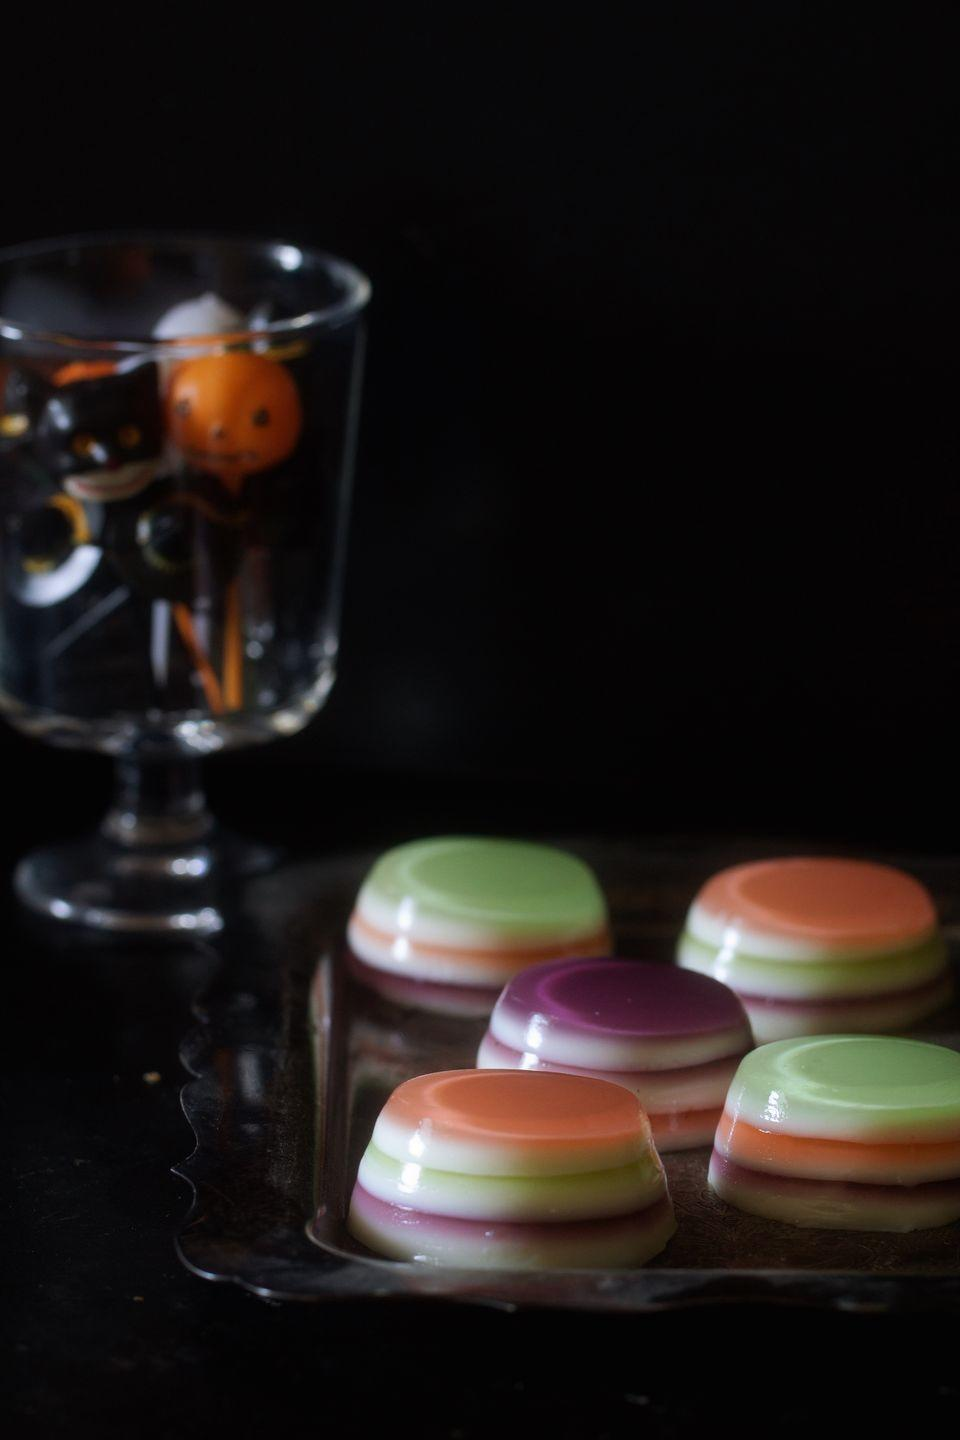 "<p>Get the monster mash started with this boozy treat.</p><p>Get the recipe from <a href=""https://www.delish.com/cooking/recipe-ideas/recipes/a43941/halloween-jell-o-shots-recipe/"" rel=""nofollow noopener"" target=""_blank"" data-ylk=""slk:Delish"" class=""link rapid-noclick-resp"">Delish</a>.<br></p><p><a class=""link rapid-noclick-resp"" href=""https://www.amazon.com/Wilton-Recipe-Right-Mini-Muffin/dp/B000SABX12/?tag=syn-yahoo-20&ascsubtag=%5Bartid%7C1782.g.151%5Bsrc%7Cyahoo-us"" rel=""nofollow noopener"" target=""_blank"" data-ylk=""slk:BUY NOW"">BUY NOW</a> <strong><em>Mini Muffin Pan Set, $20, amazon.com</em></strong></p>"